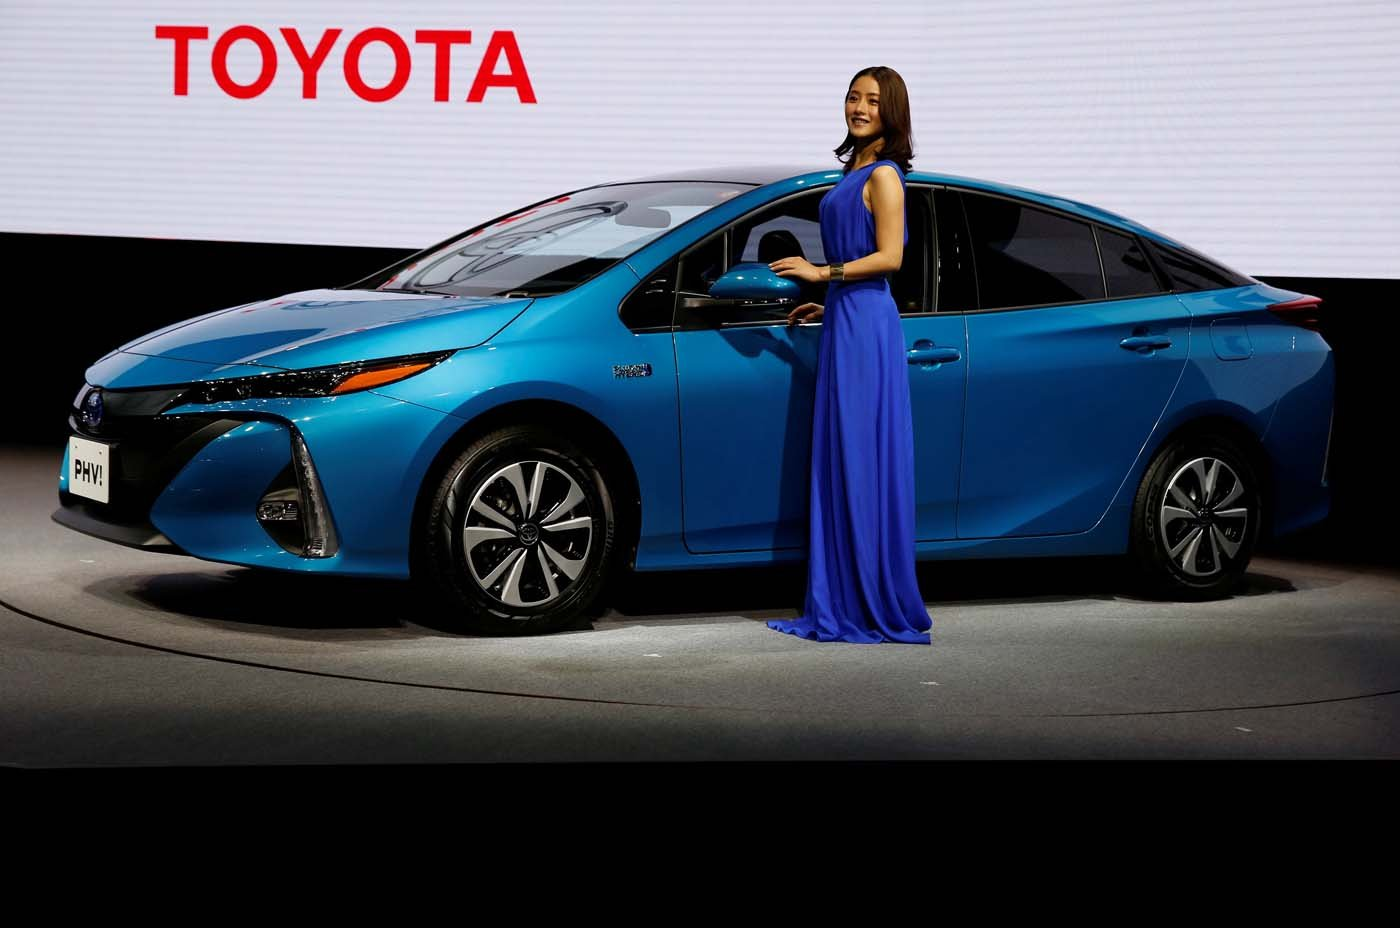 Japanese actress Satomi Ishihara poses next to Toyota Motor Corp.' Prius PHV Plug-in-Hybrid vehicle, also known as Prius Prime in the U.S., during an event to mark the launch of the car in Japan, in Tokyo, Japan February 15, 2017. REUTERS/Issei Kato